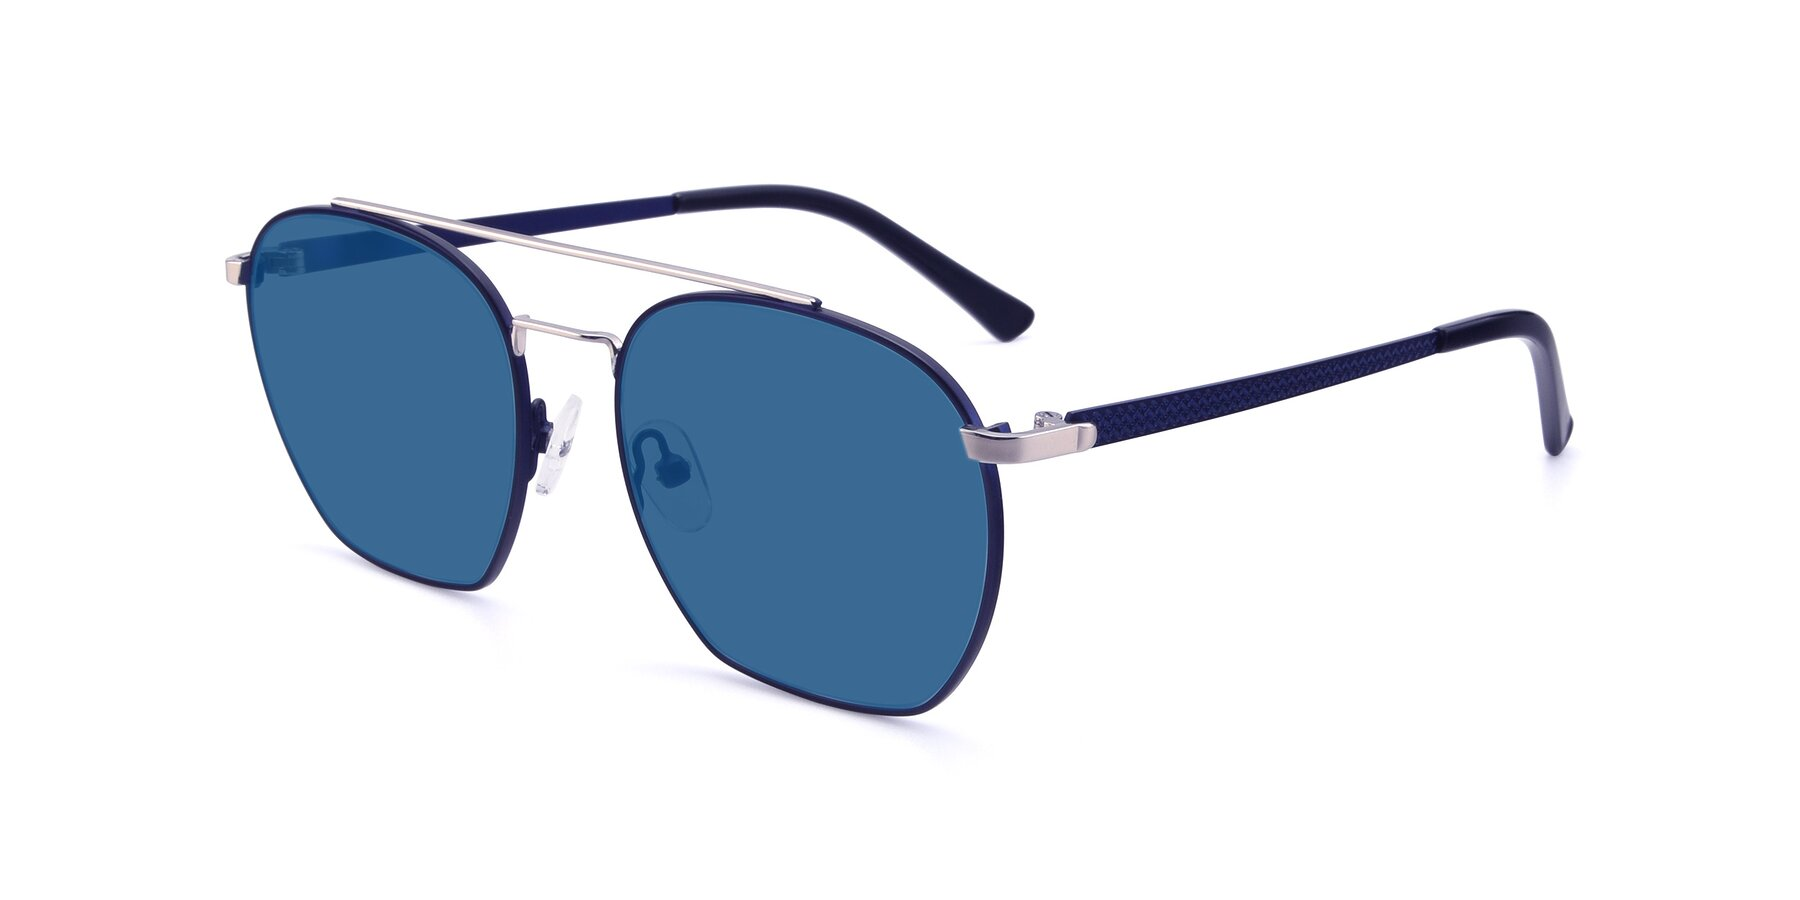 Angle of 9425 in Blue-Silver with Blue Tinted Lenses